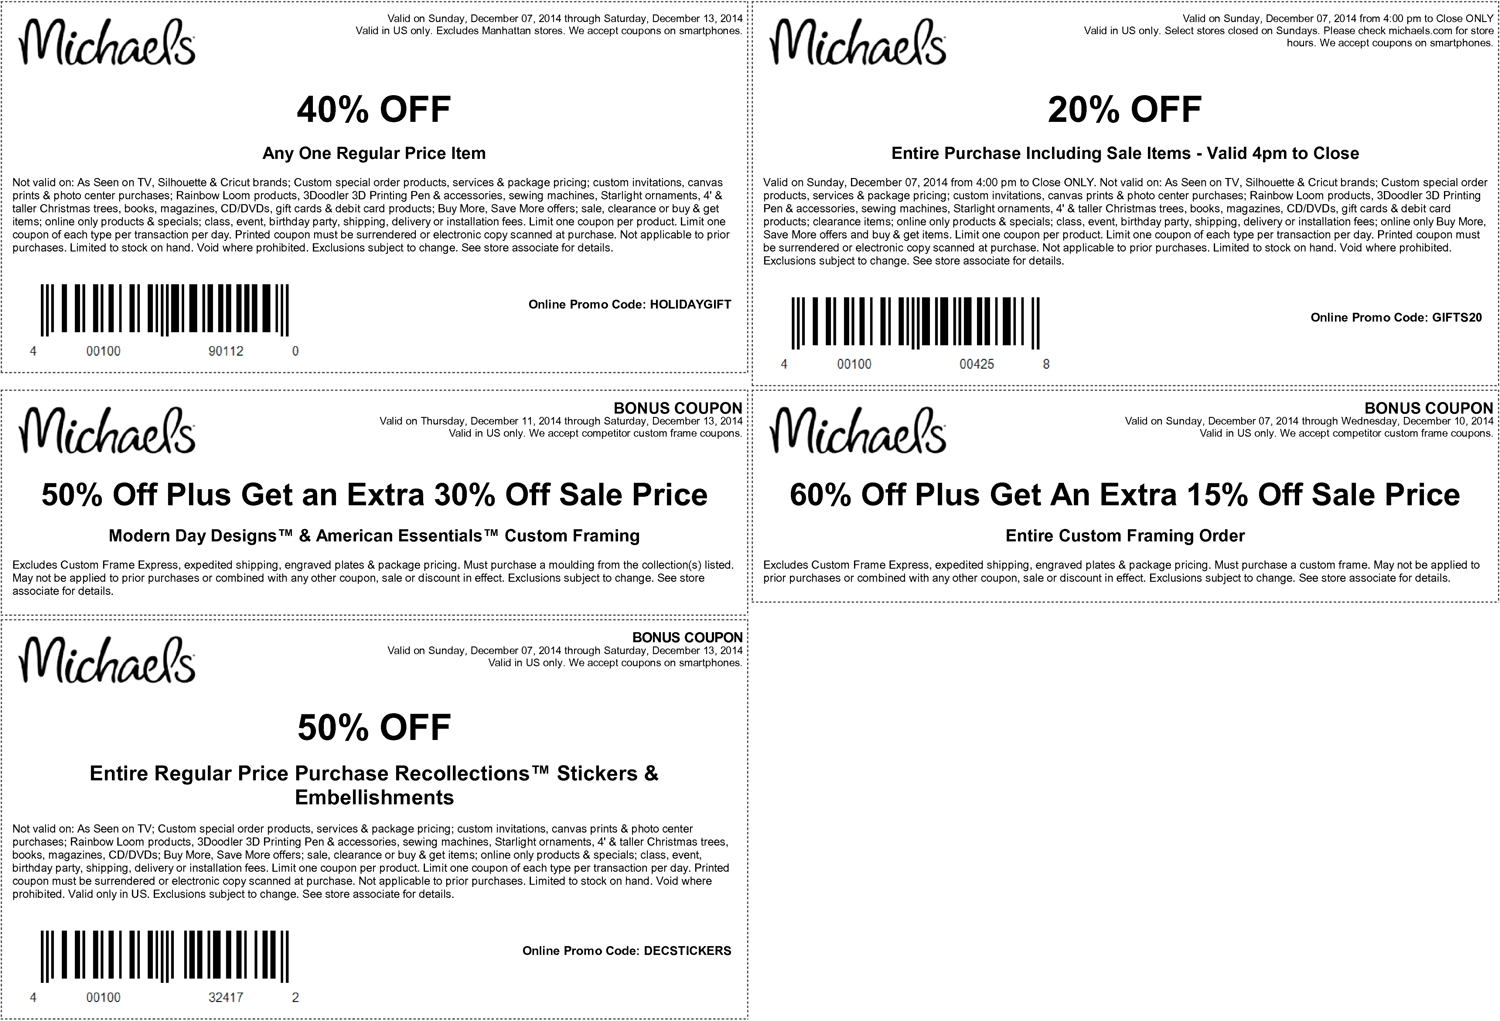 michaels 20 off entire purchase 2019